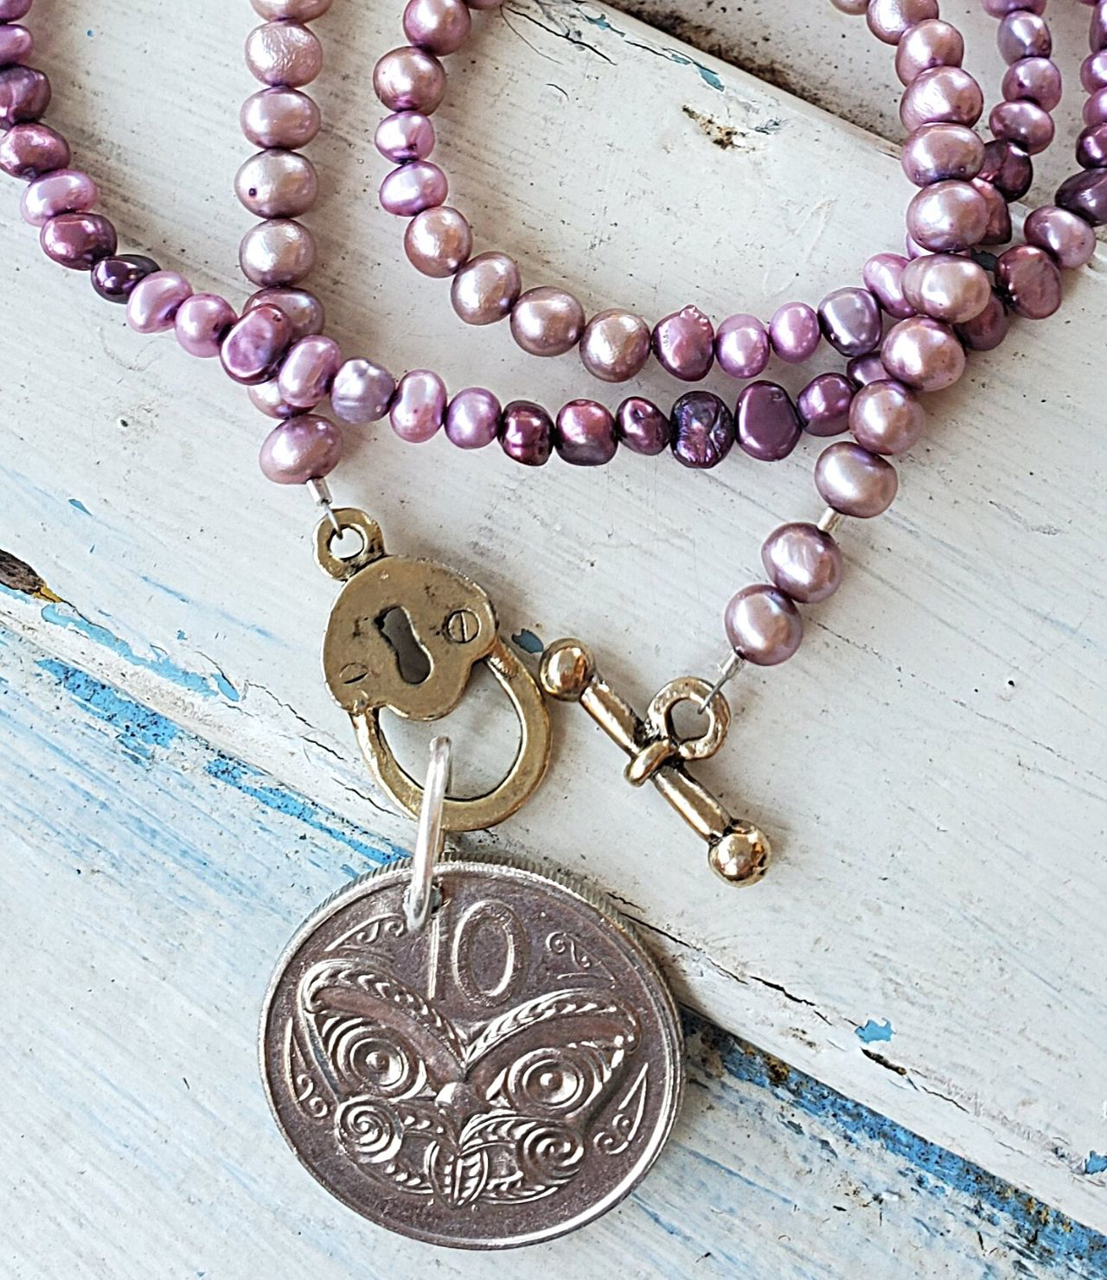 Silver New Zealand purple pearl coin necklace on white distressed wood